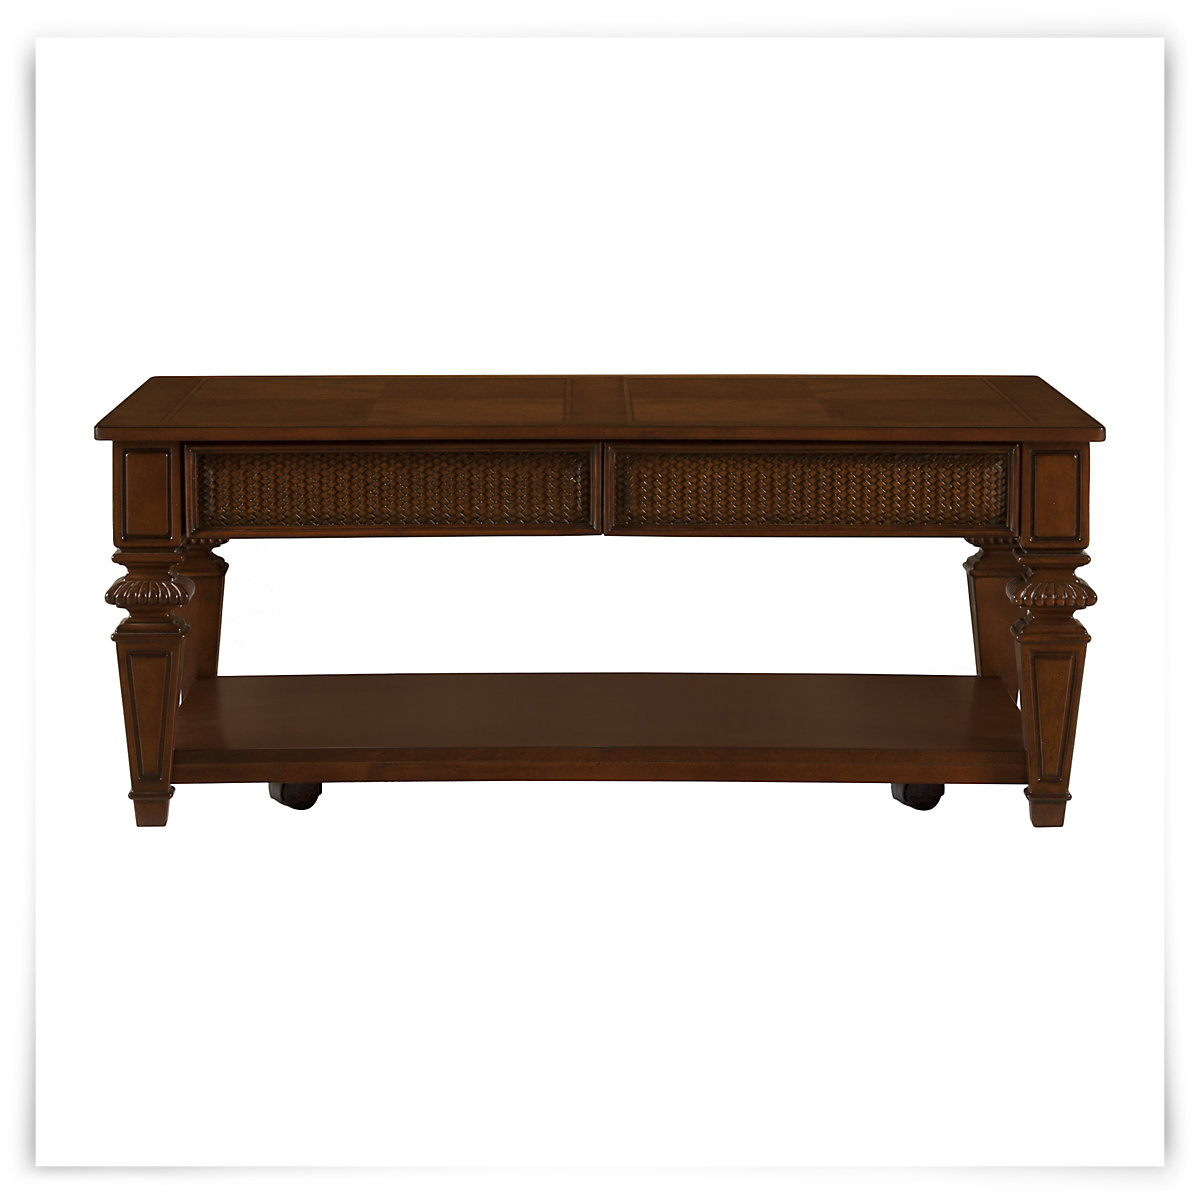 City furniture antigua mid tone rectangular coffee table for Antigua wicker chaise